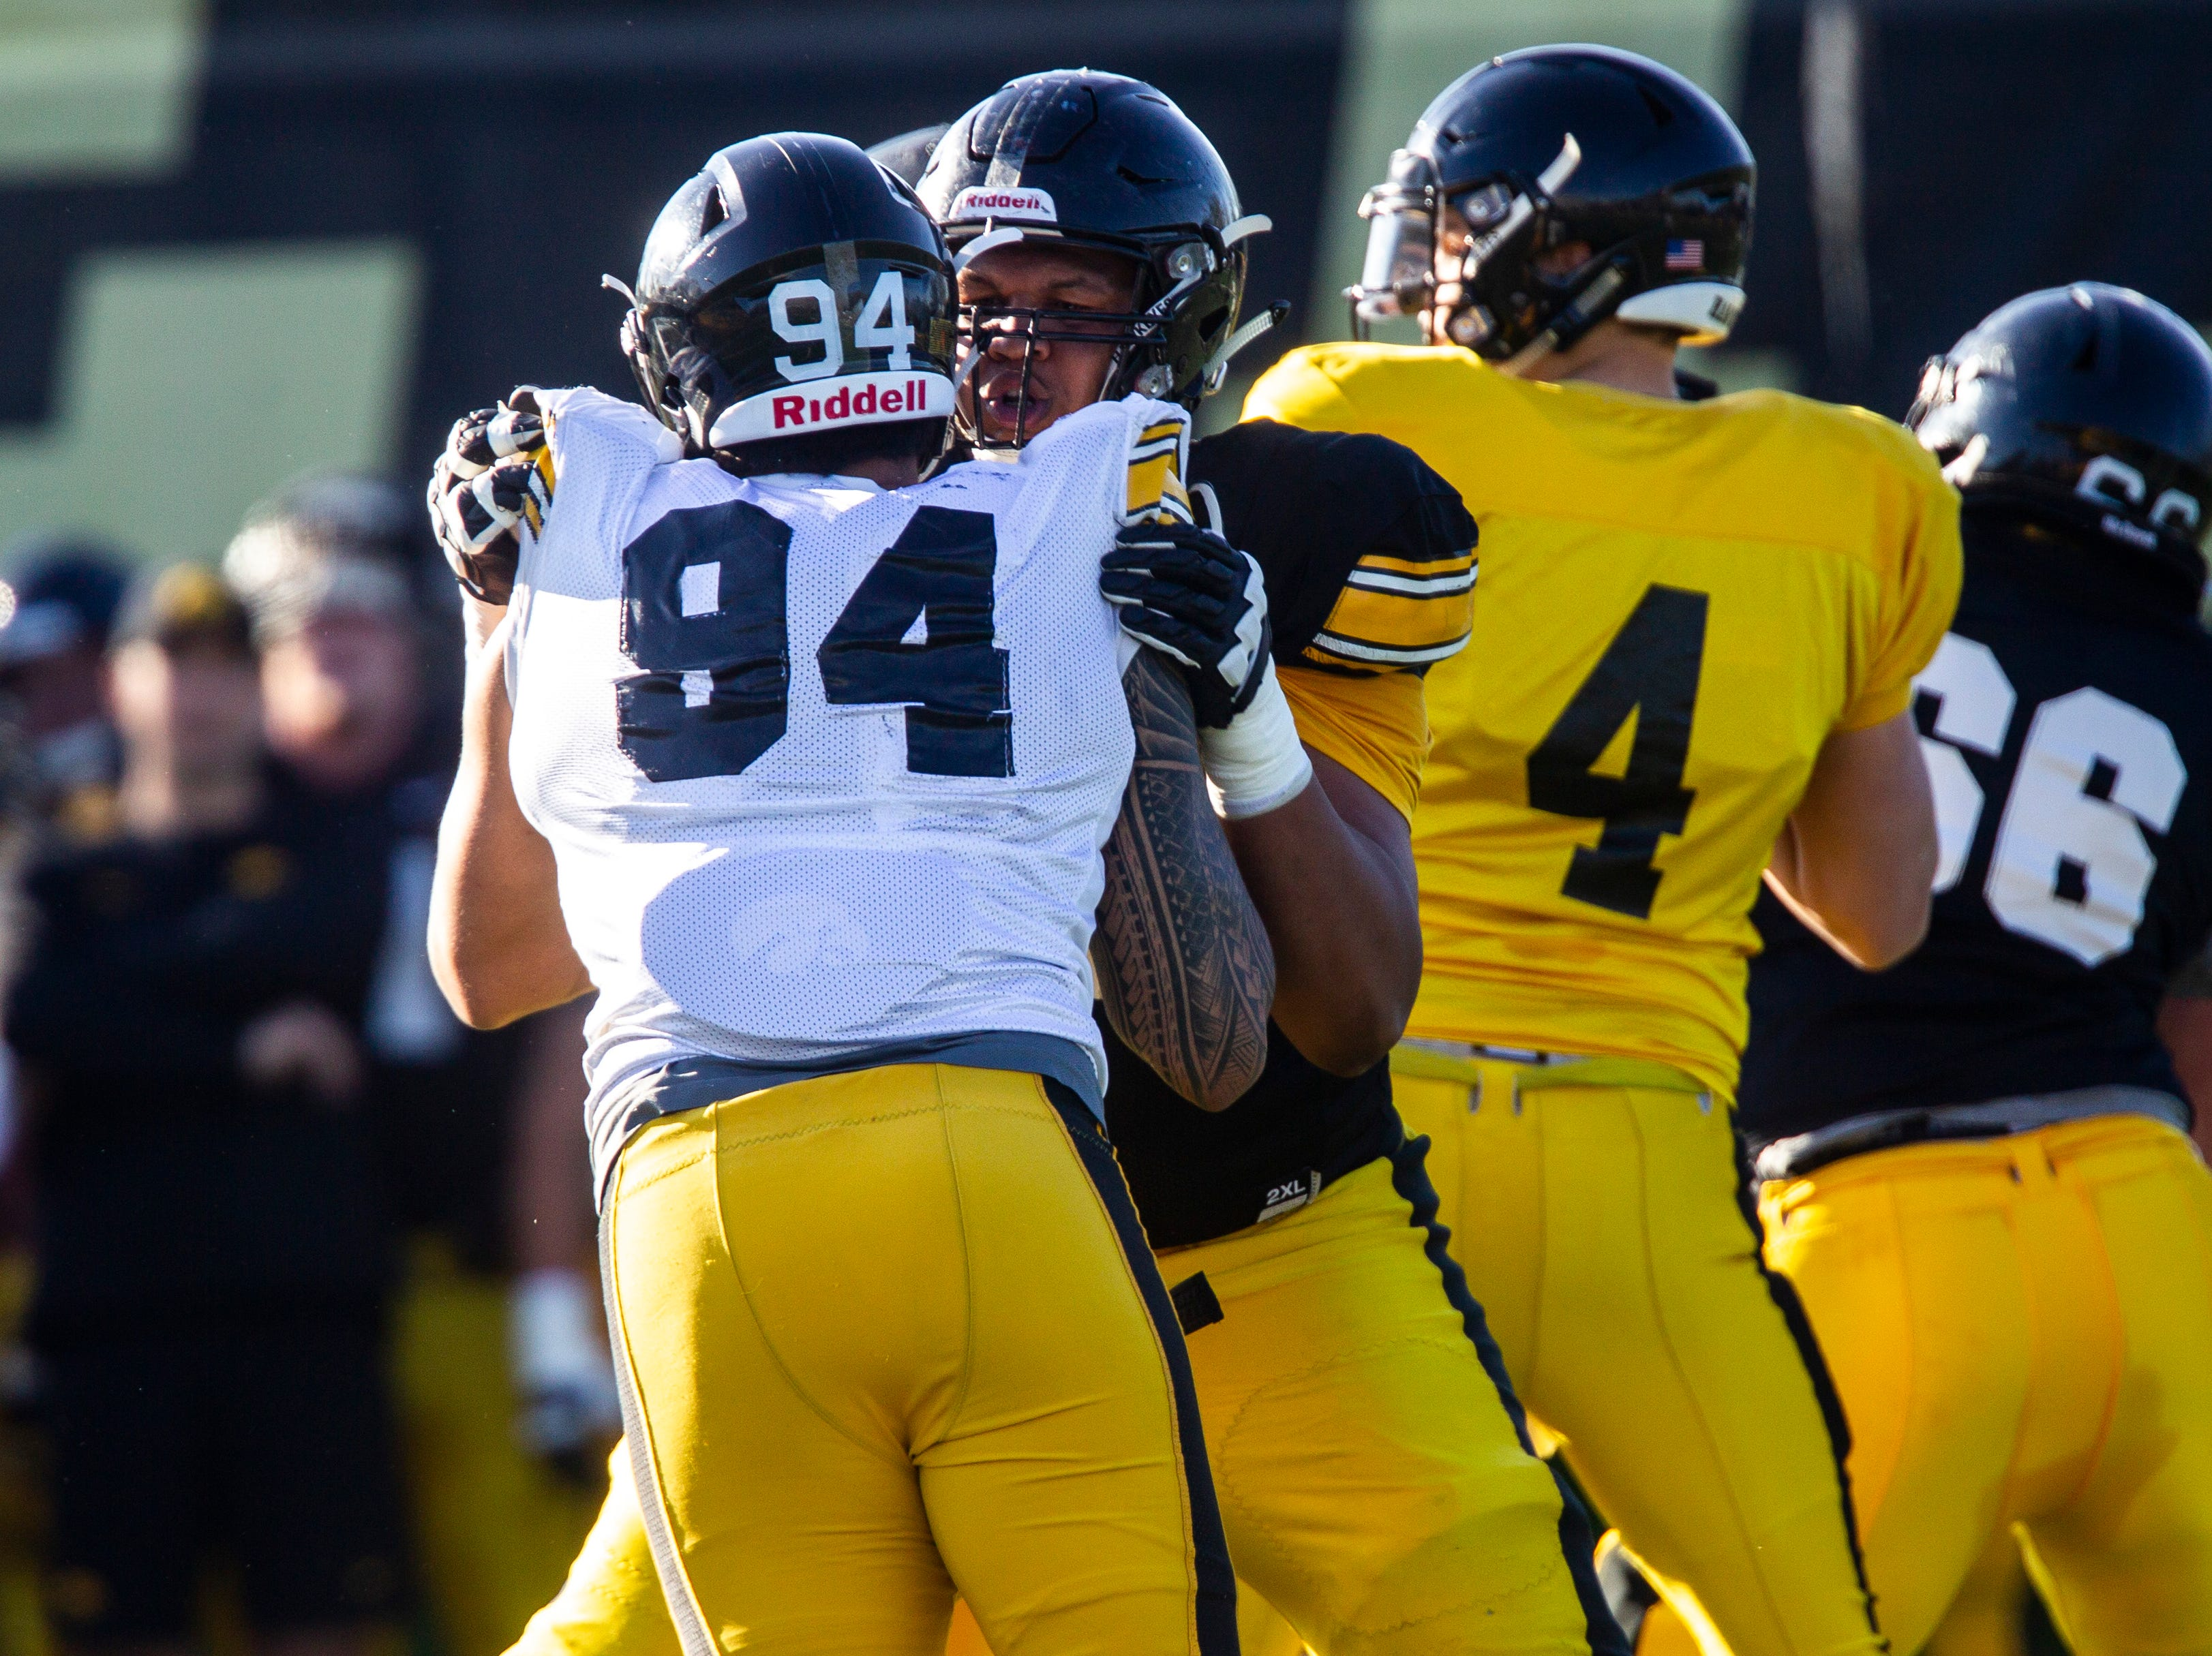 Iowa offensive lineman Alaric Jackson blocks defensive end A.J. Epenesa (94) during the final spring football practice, Friday, April 26, 2019, at the University of Iowa outdoor practice facility in Iowa City, Iowa.